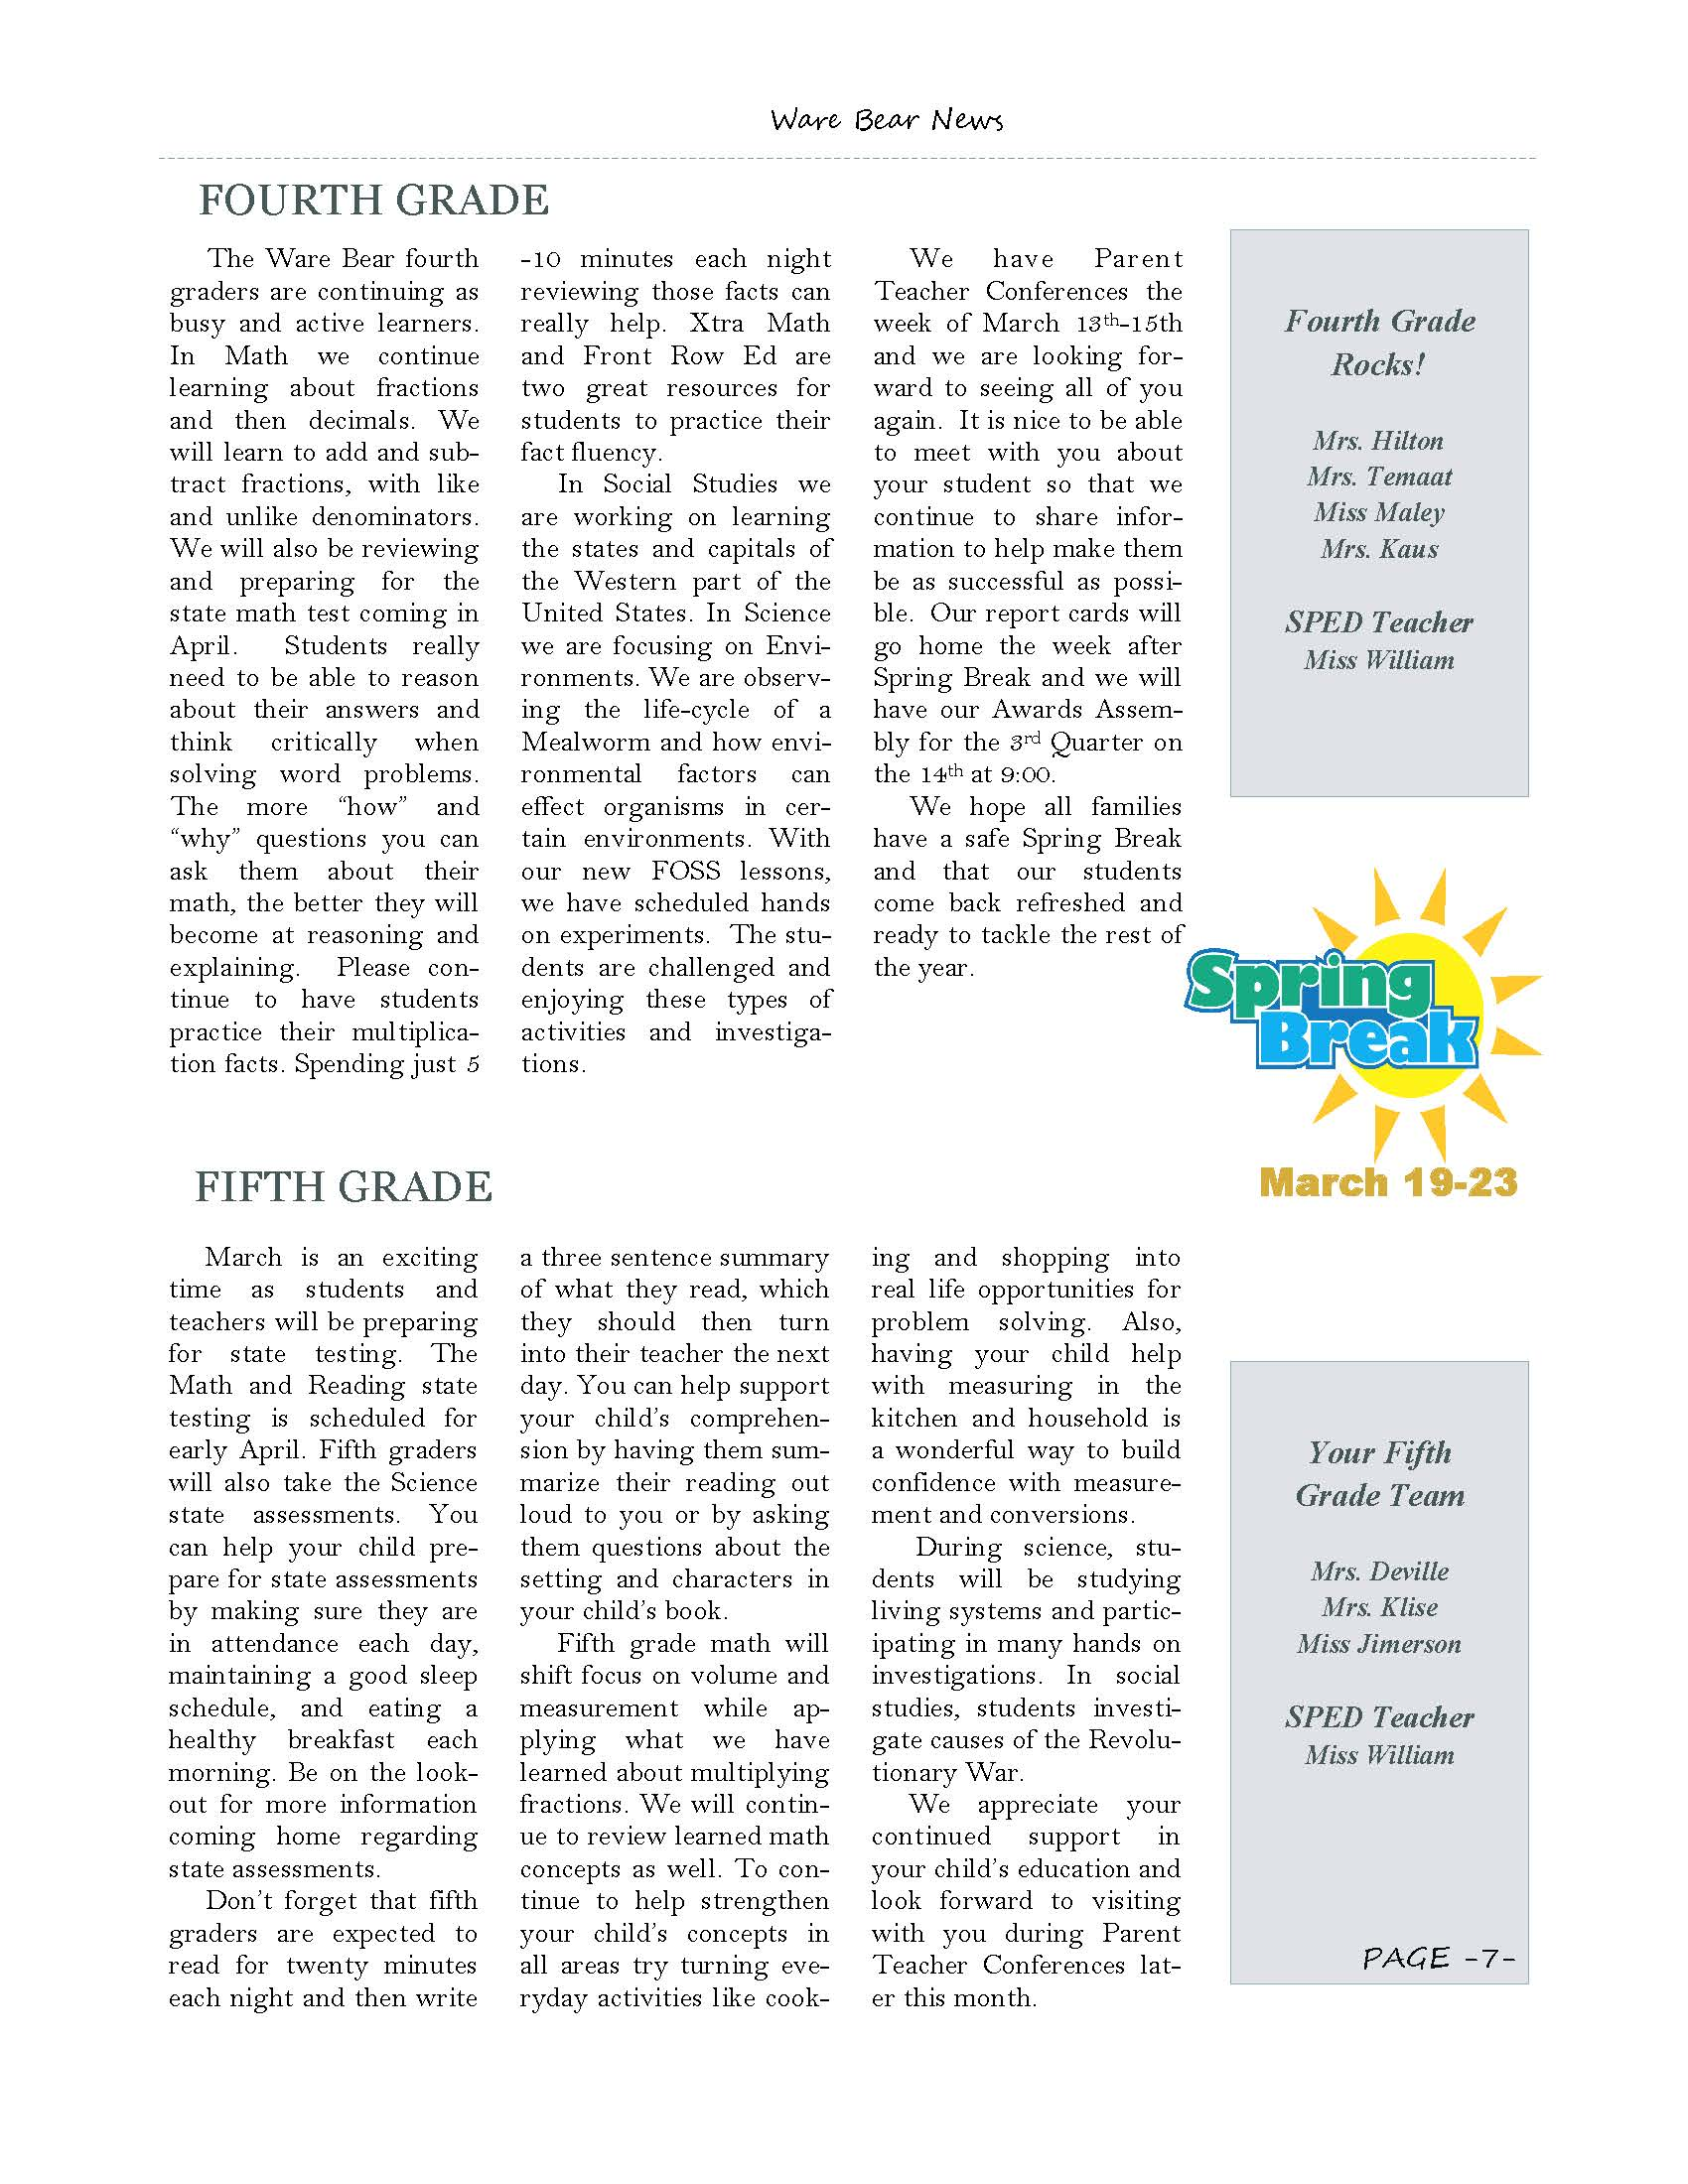 March eNewsletter Page 7